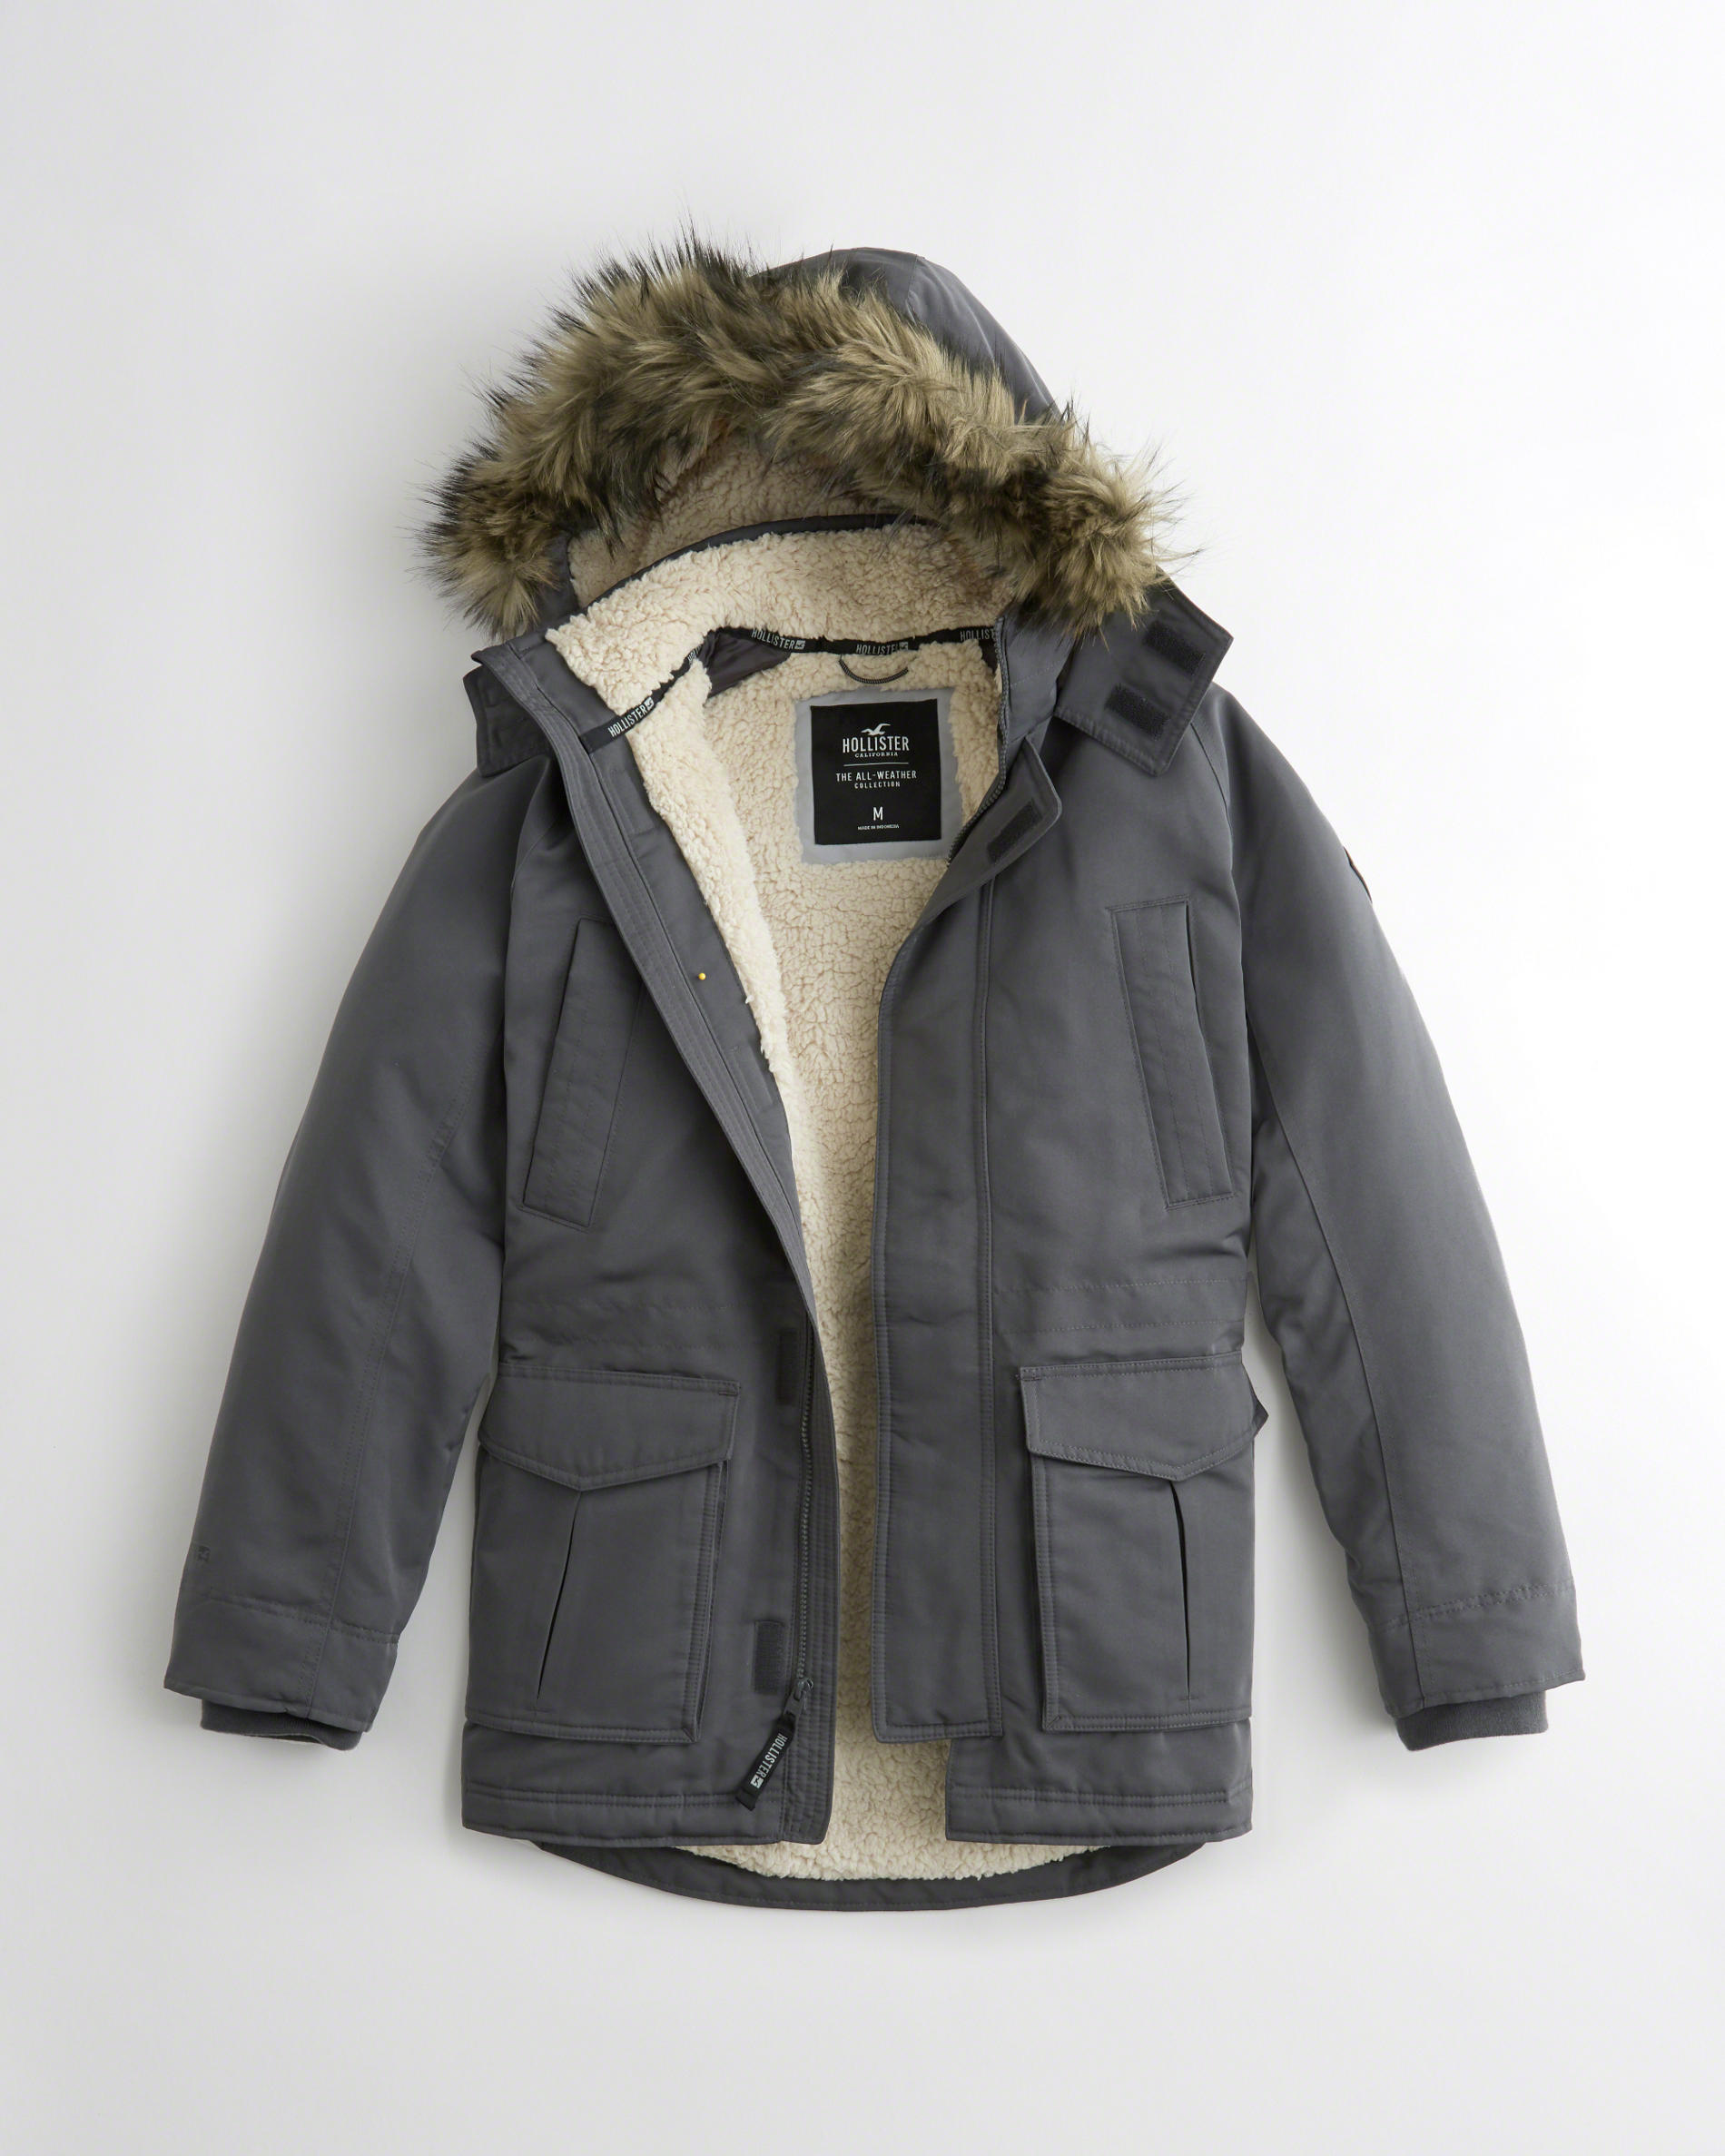 【Hollister】All-Weather Sherpa-Lined Parka☆裏ボア☆